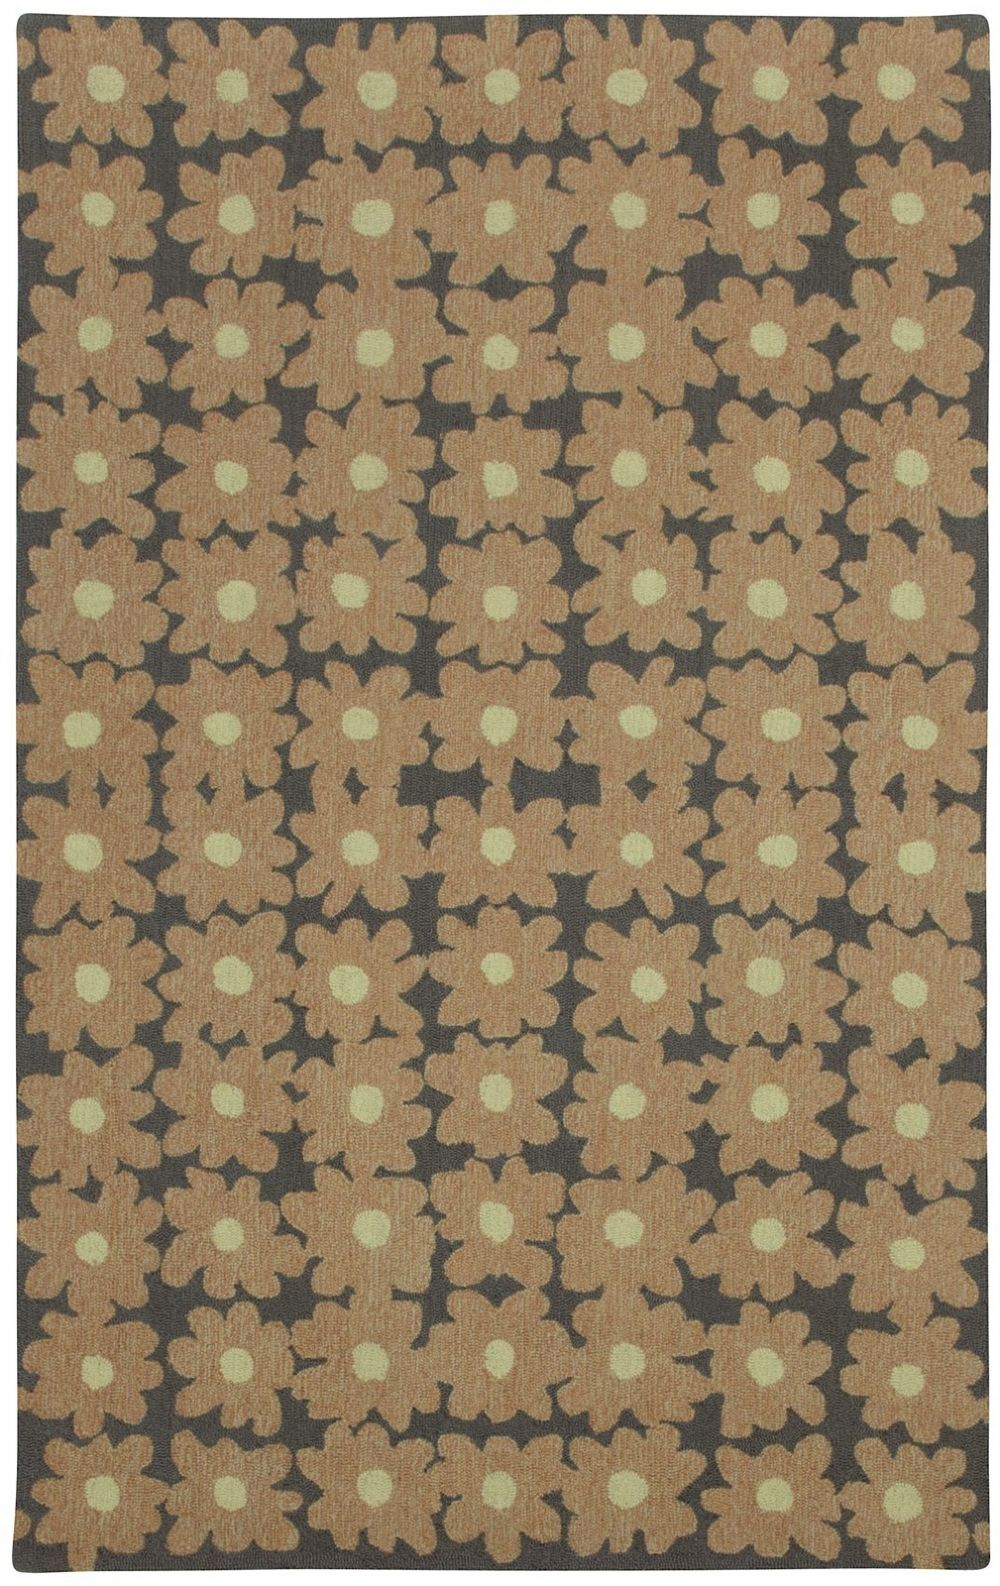 capel leaflet contemporary area rug collection